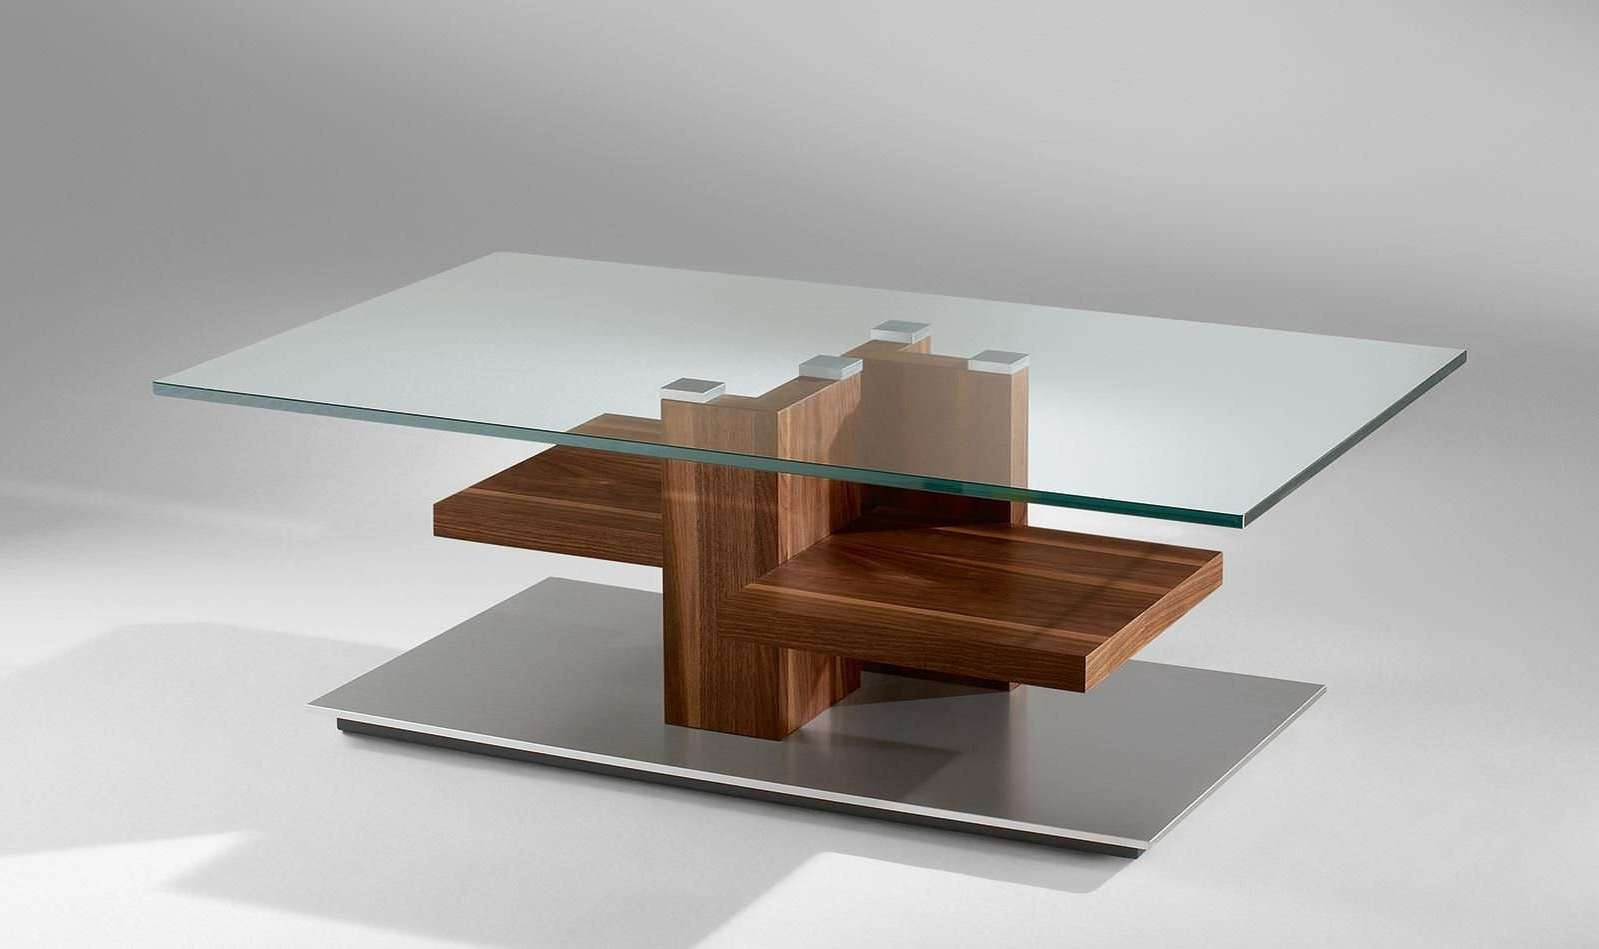 Most Recently Released Glass And Wood Coffee Tables Regarding Stunning Coffee Table Wood Glass On Home Design Planning (View 13 of 20)